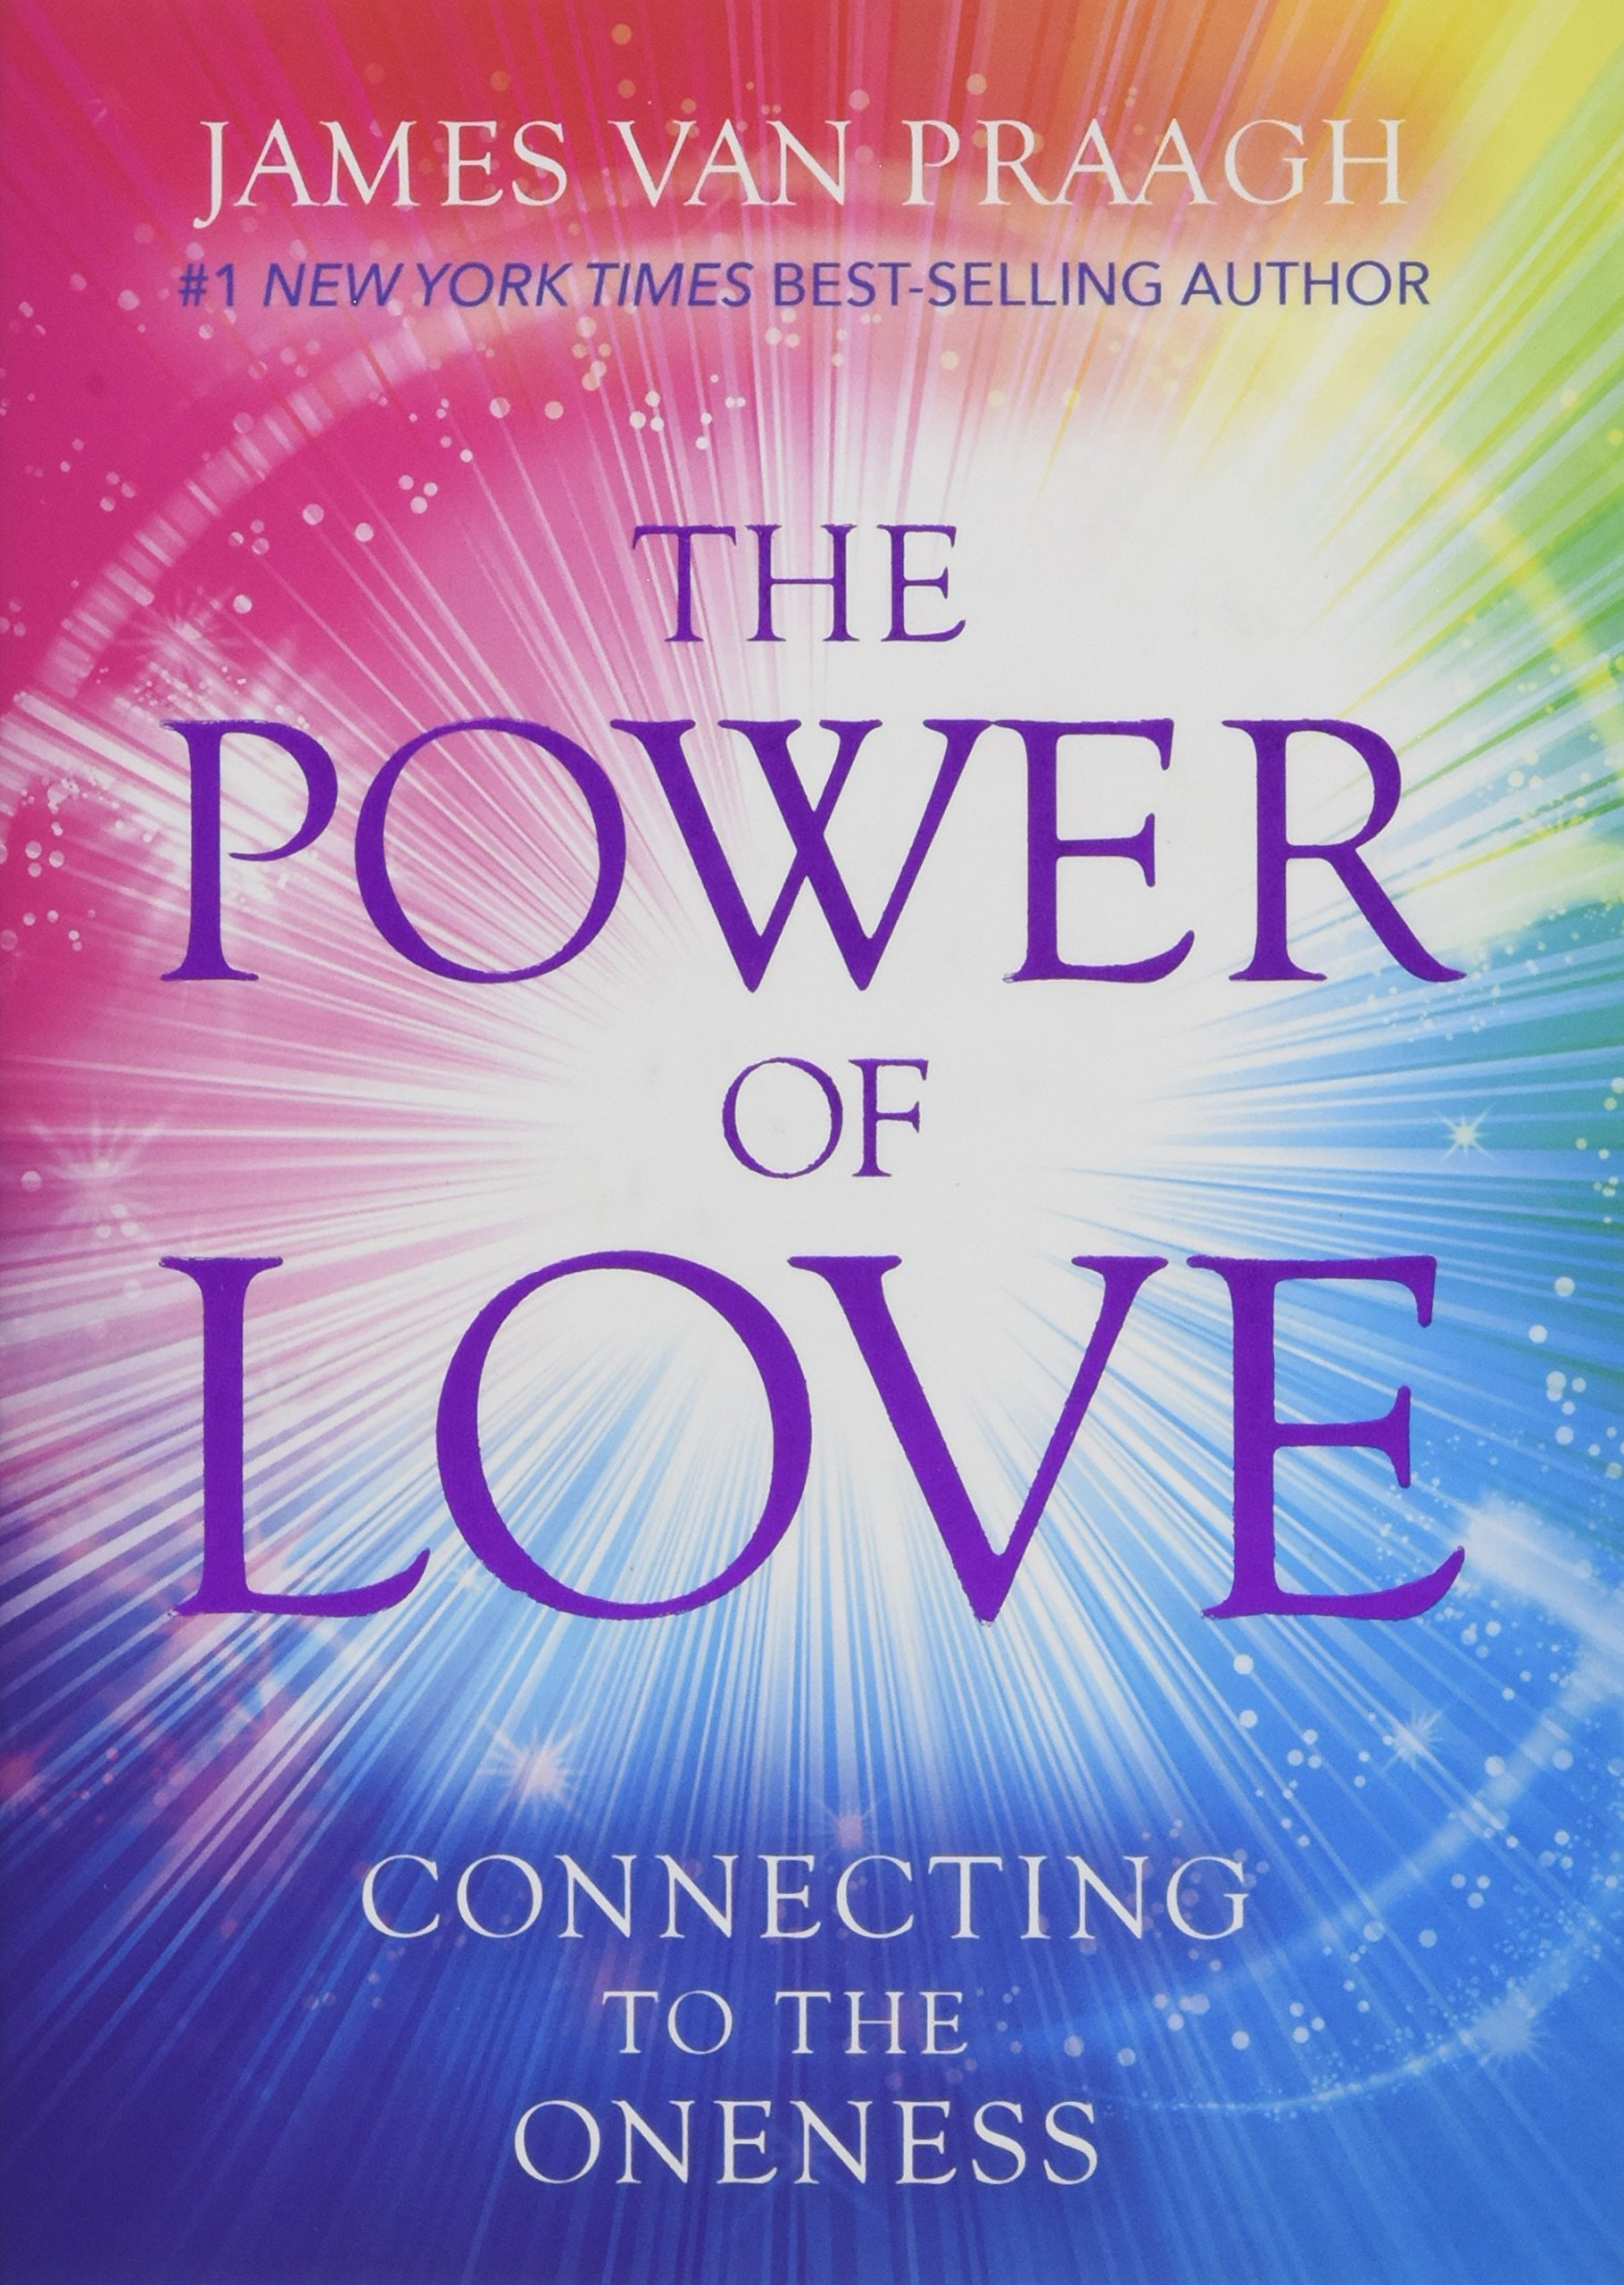 The Power of Love: Connecting to the Oneness: James Van Praagh:  9781401951344: Amazon.com: Books